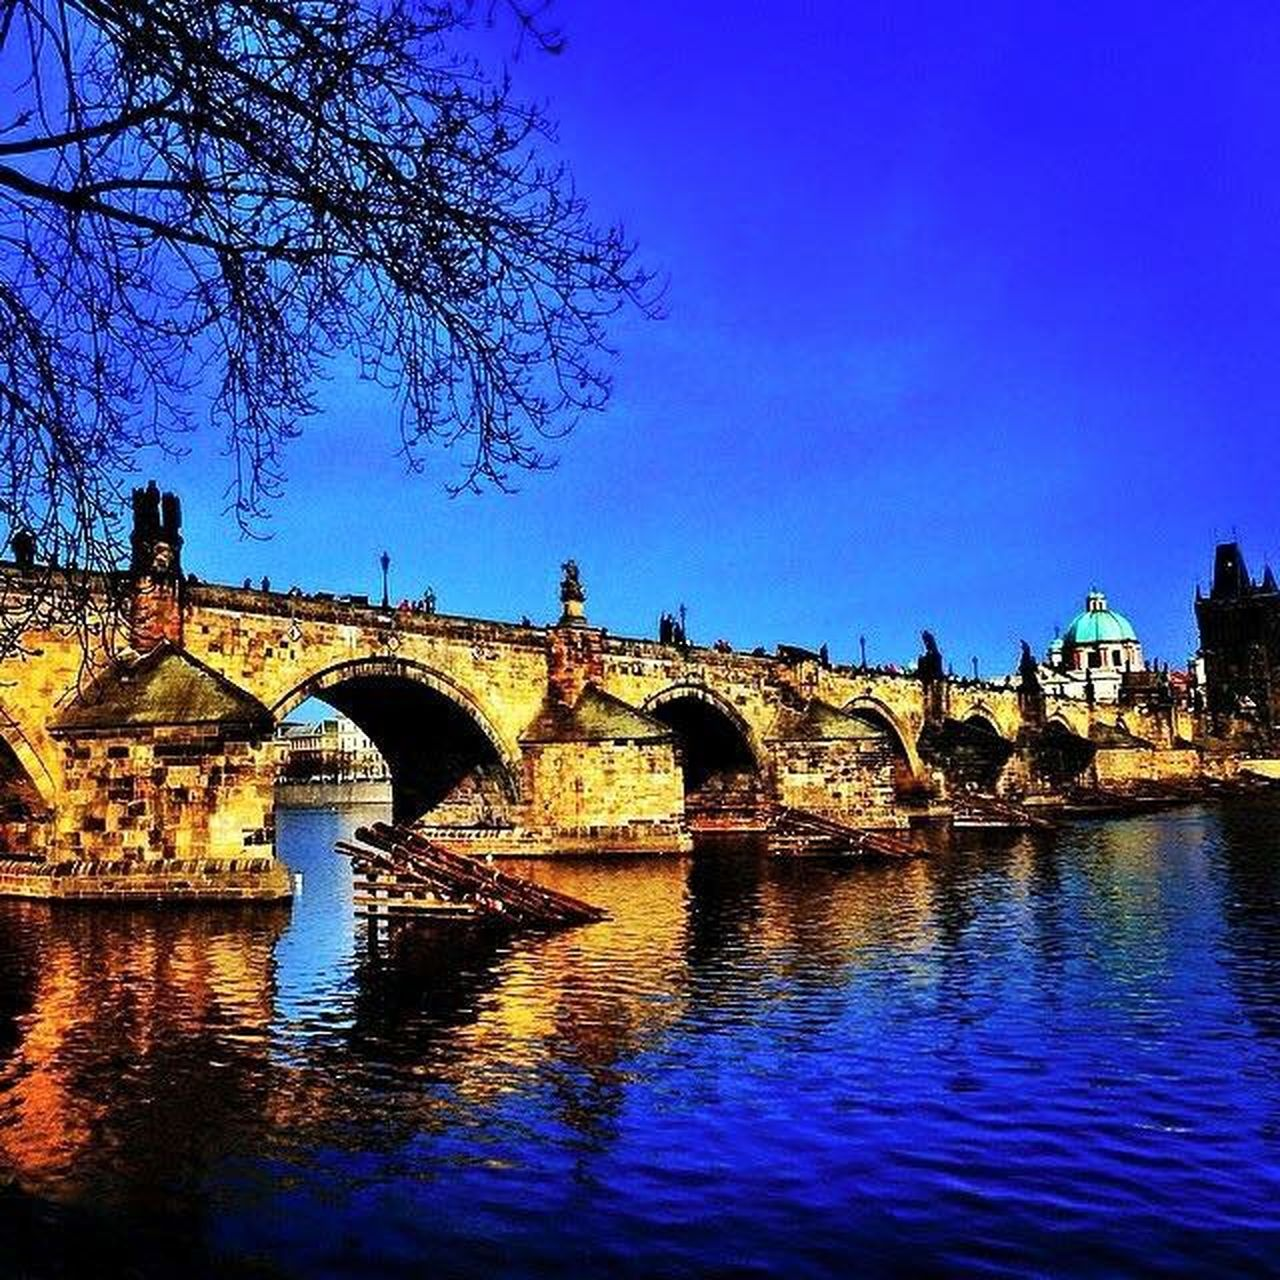 arch, architecture, built structure, water, bridge - man made structure, history, connection, reflection, travel destinations, day, blue, no people, outdoors, building exterior, sky, clear sky, tree, city, ancient civilization